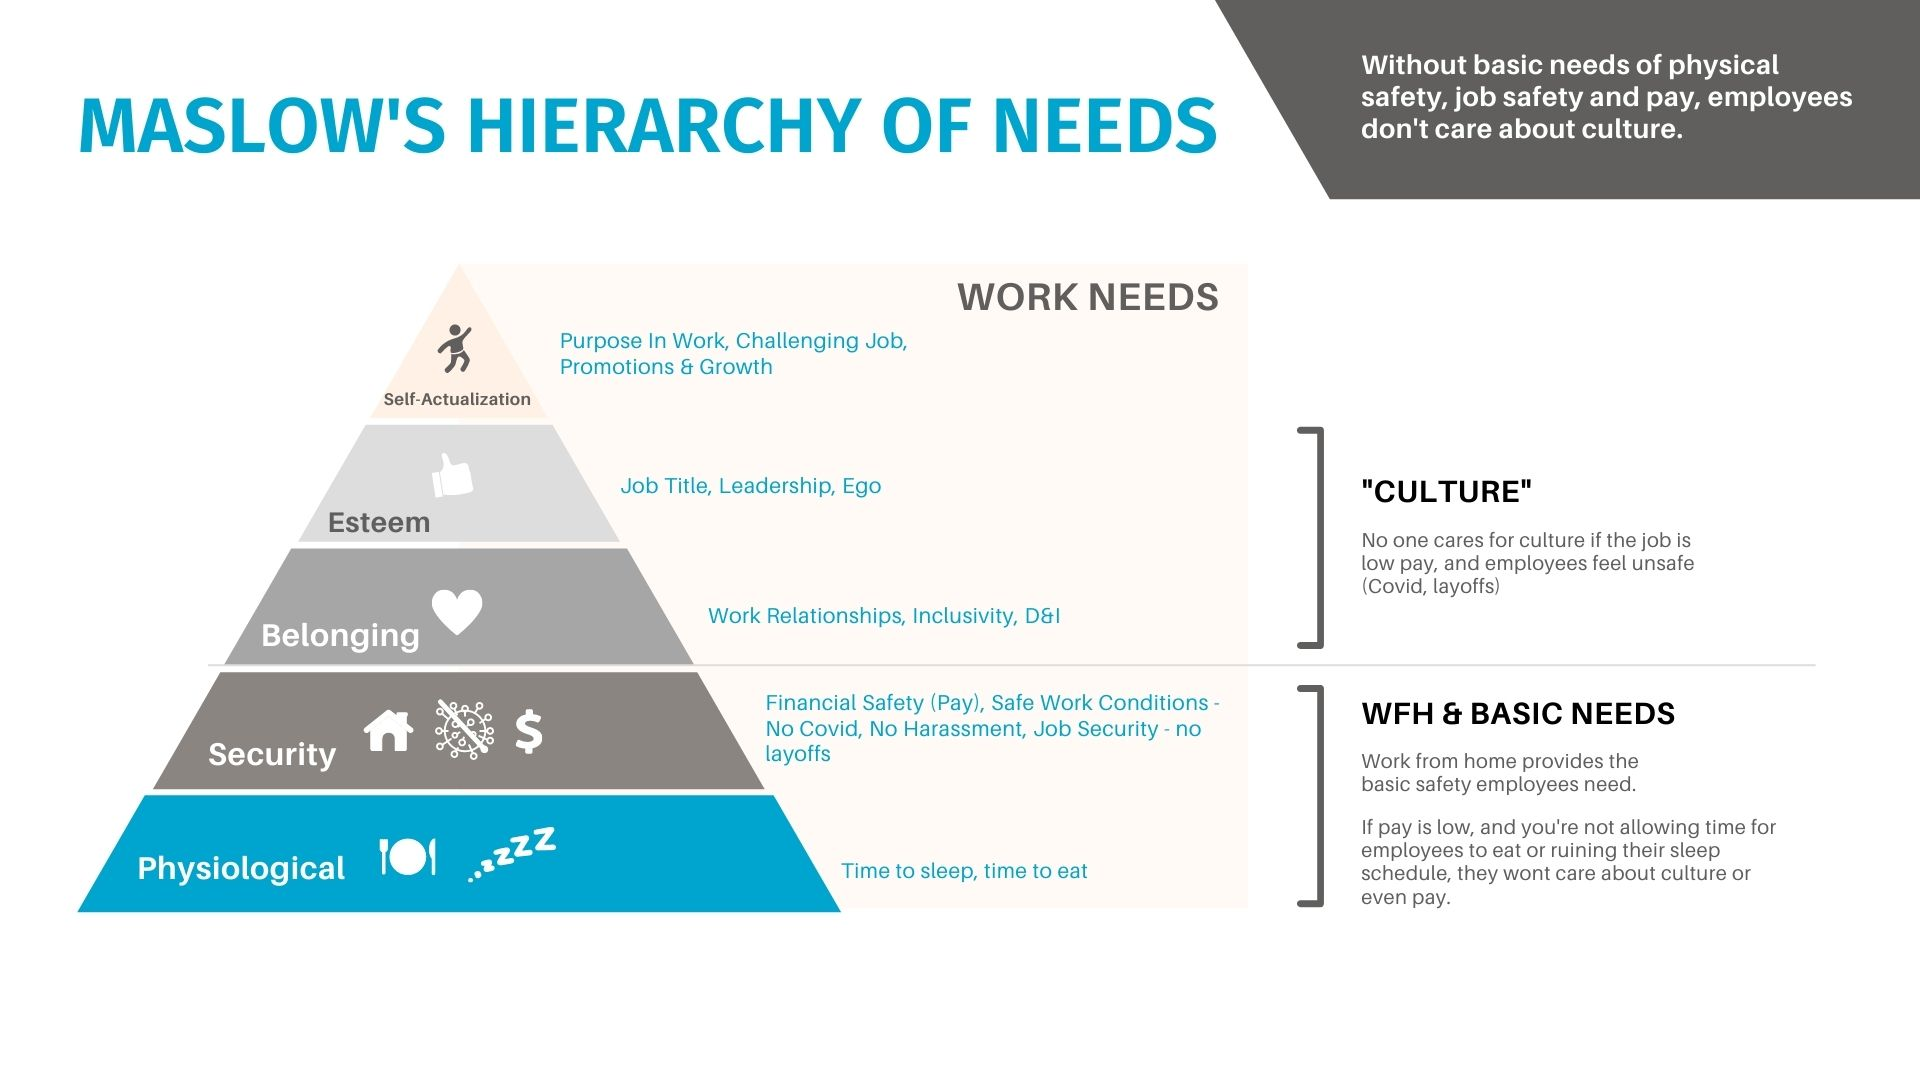 Work from home and corporate culture hierarchy of needs